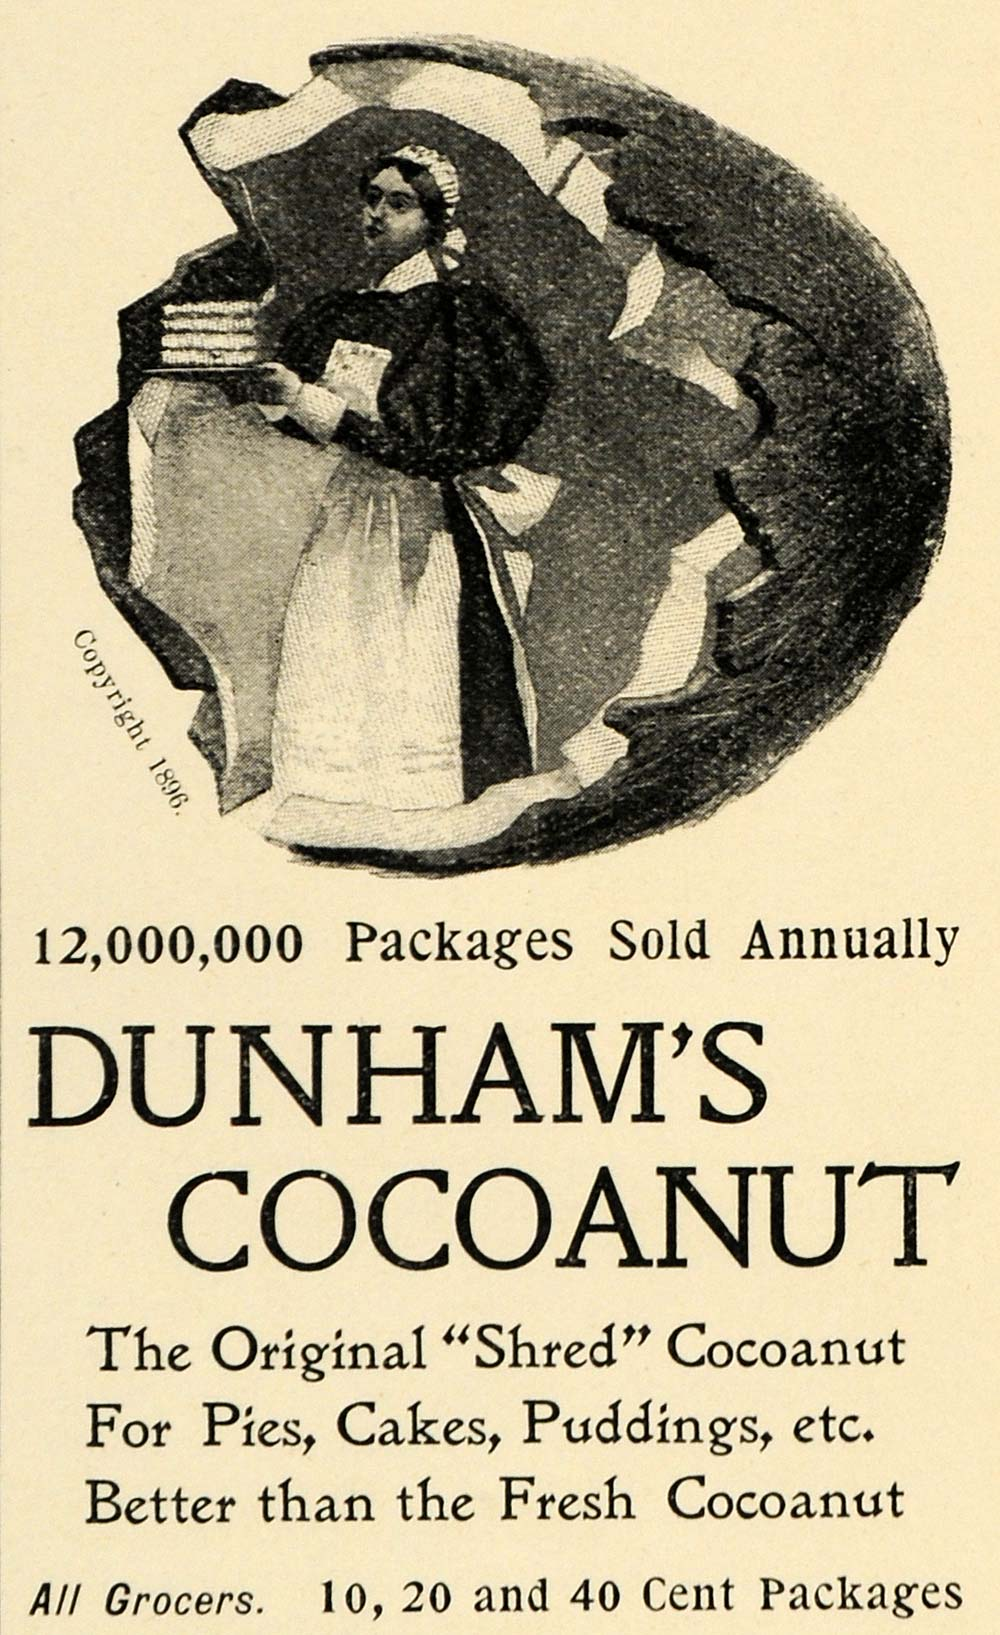 1897 Ad Dunham's Shred Cocoanut Baking Pie Cake Pudding - ORIGINAL LHJ4